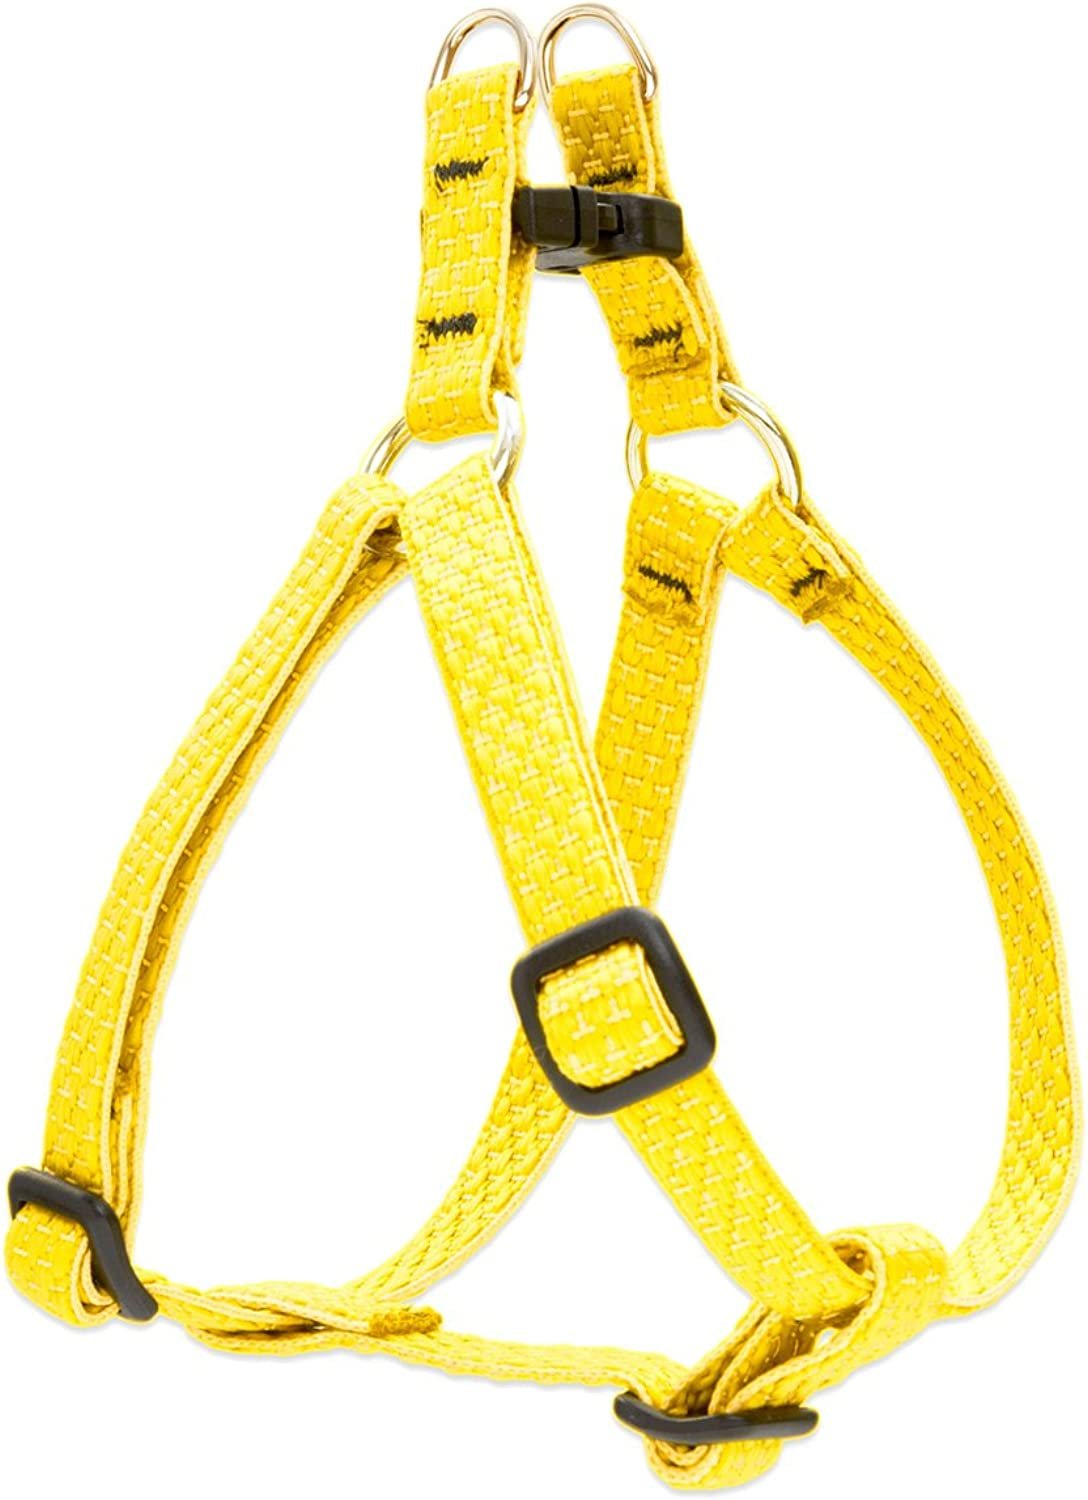 Lupine Eco 1 2Inch Recycled Fiber StepIn Harness for Small Dogs with Girth Size 10 to 13Inch, Sunshine